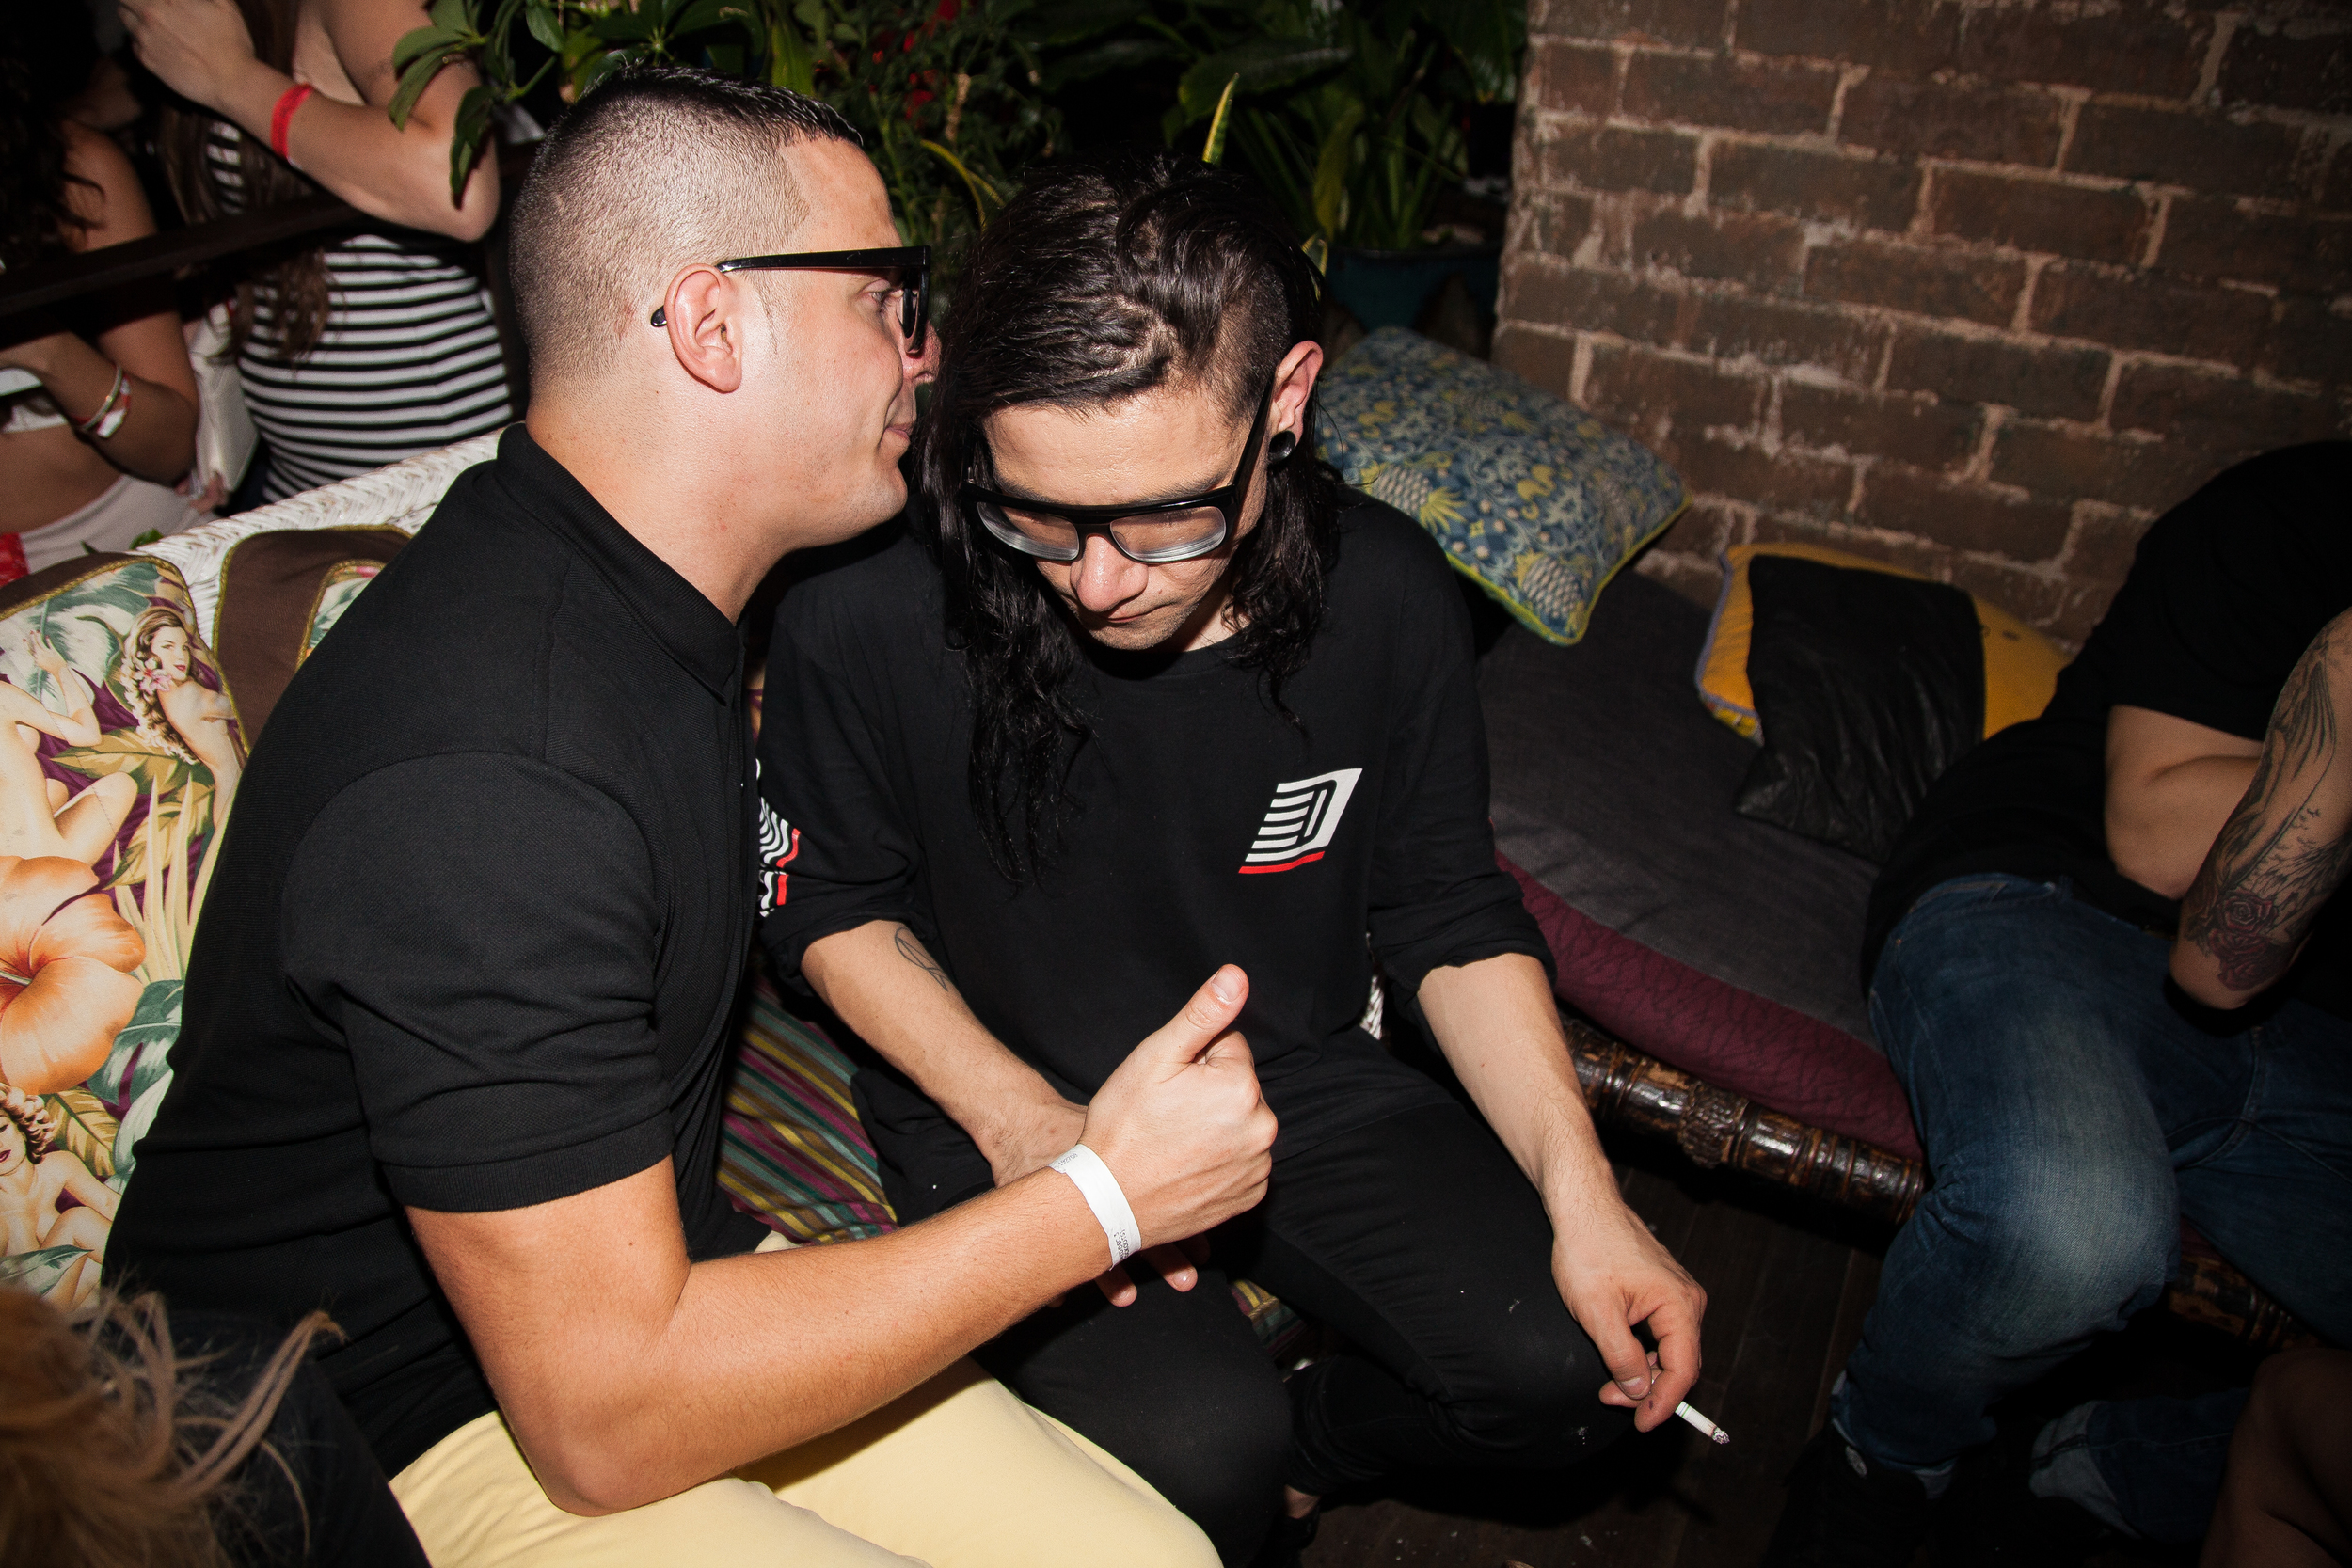 04.12.2014  Industry secrets last night between DJ Snake & Skrillex in Kings Cross.